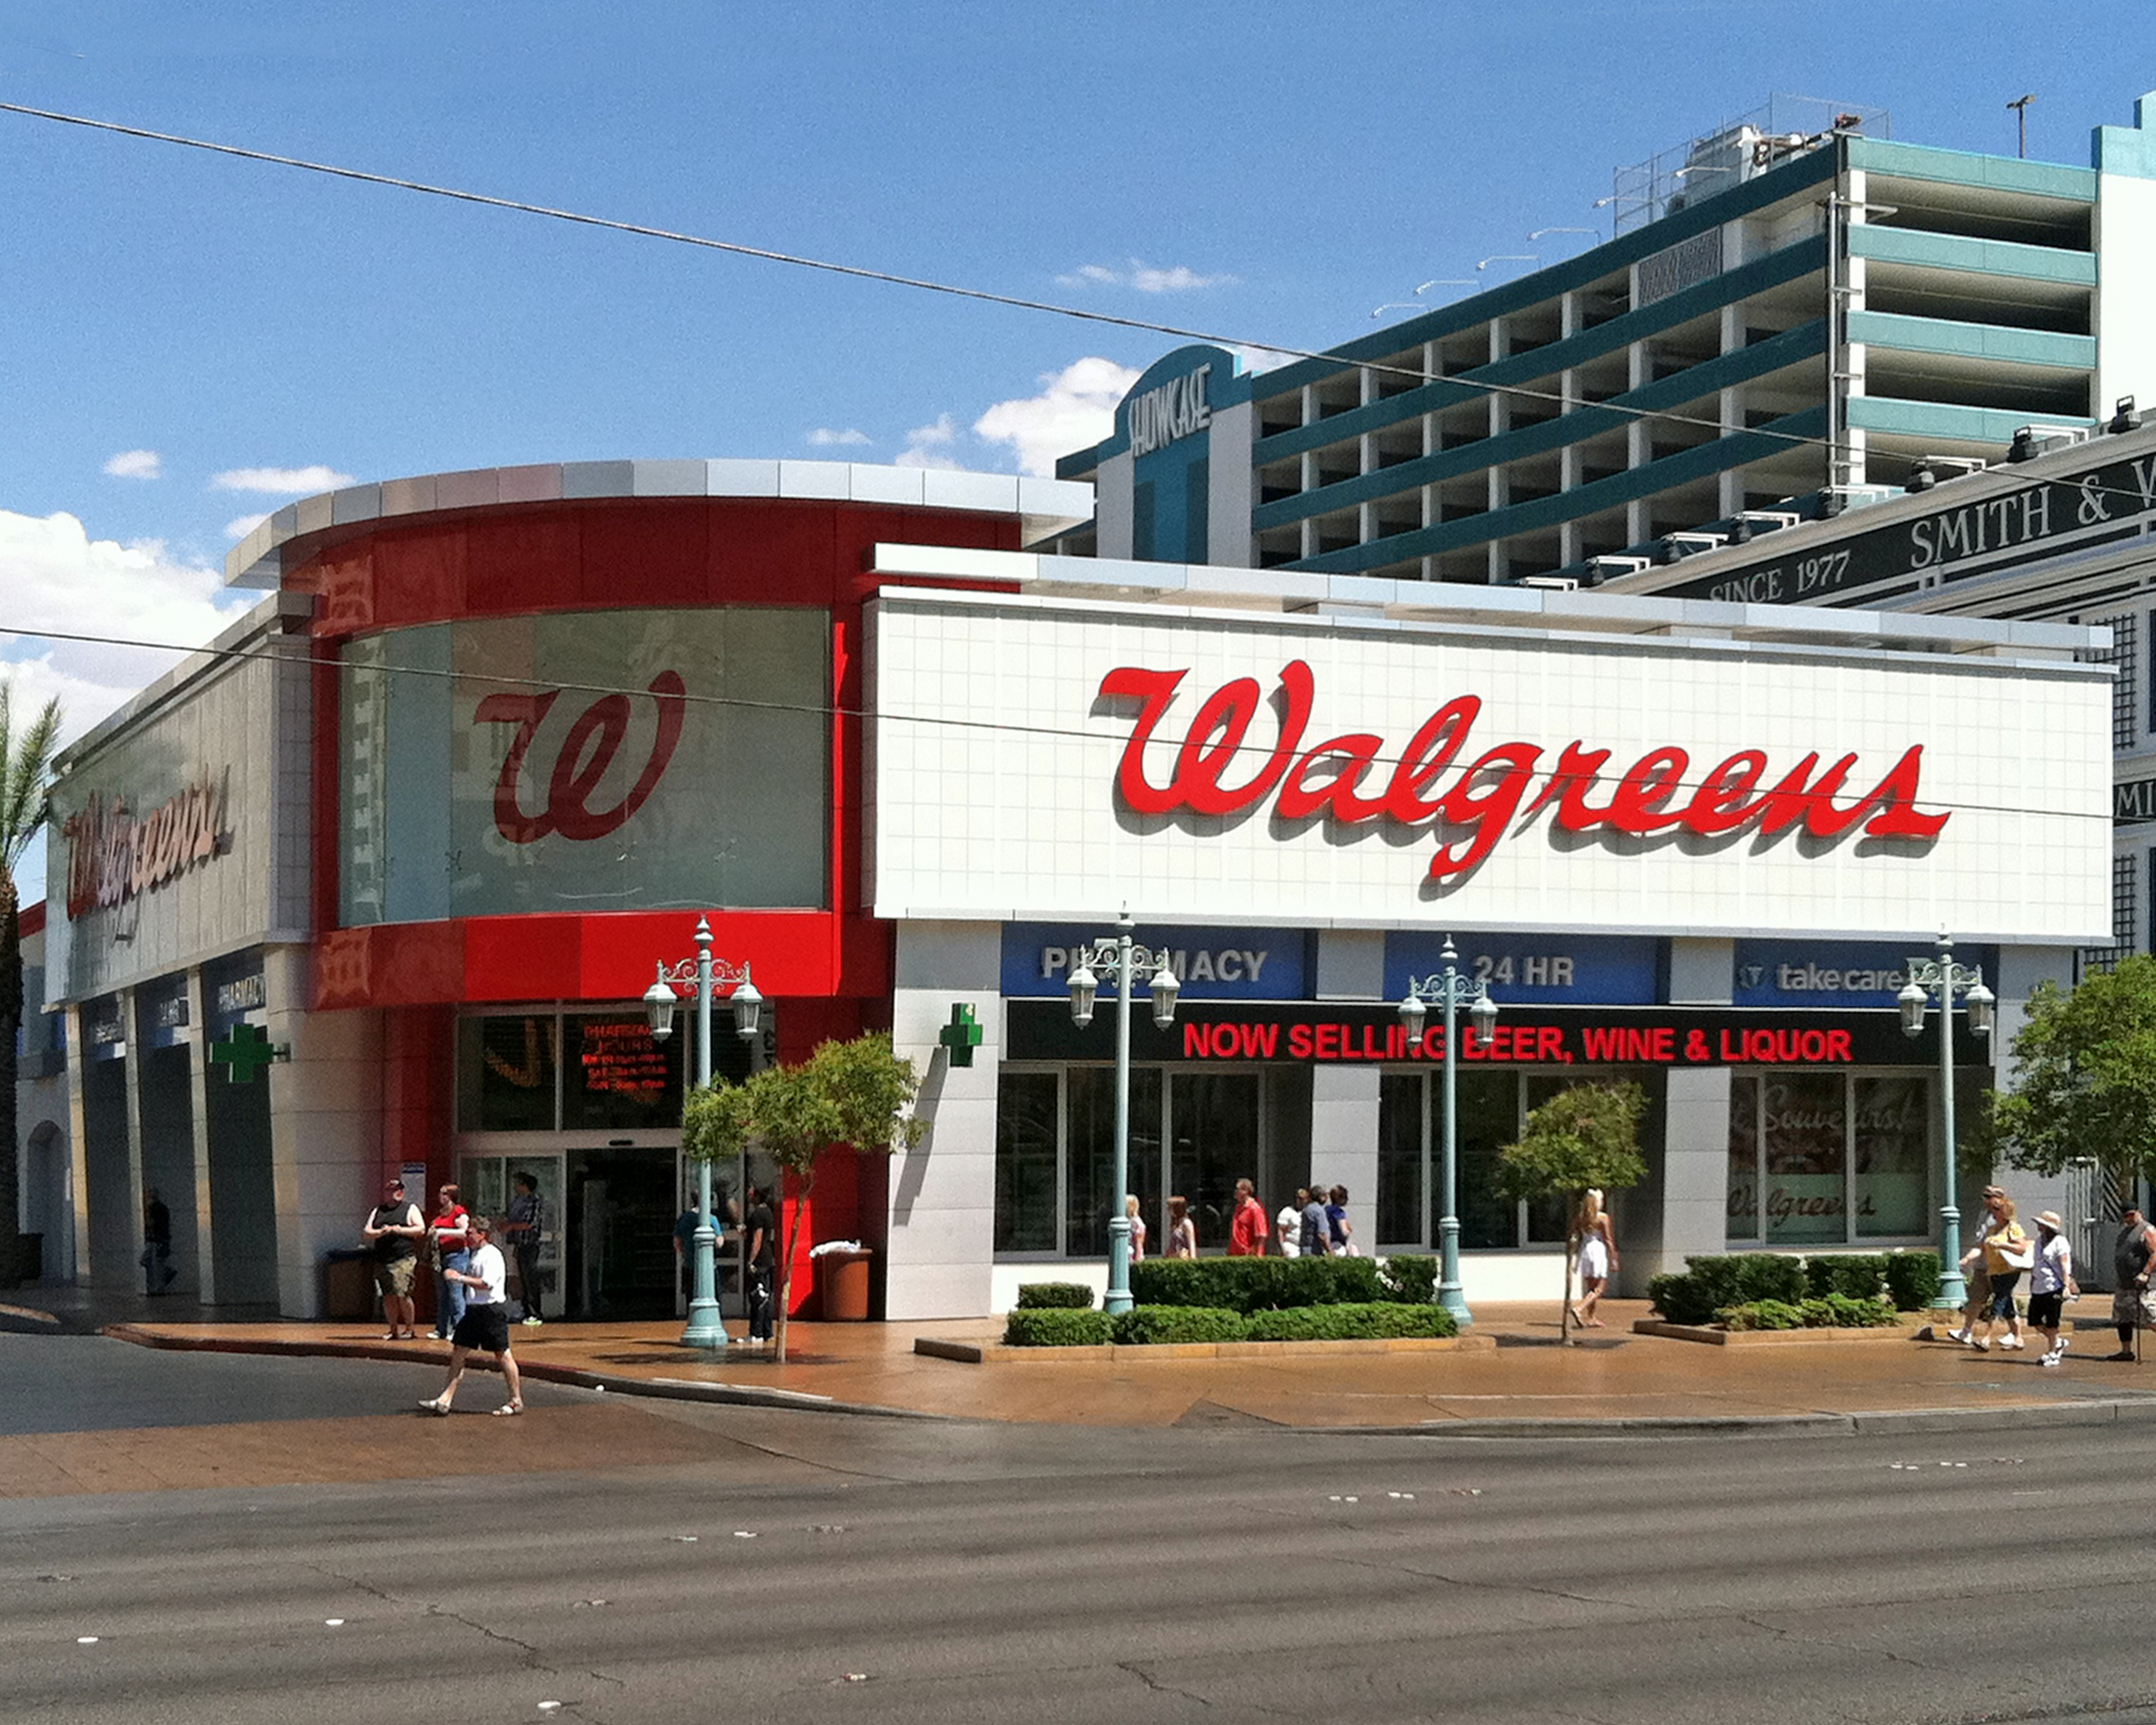 Find the best Walgreens Photo coupons, promo codes and deals for December All coupons hand-verified and guaranteed to work. Exclusive offers and bonuses up to % back!